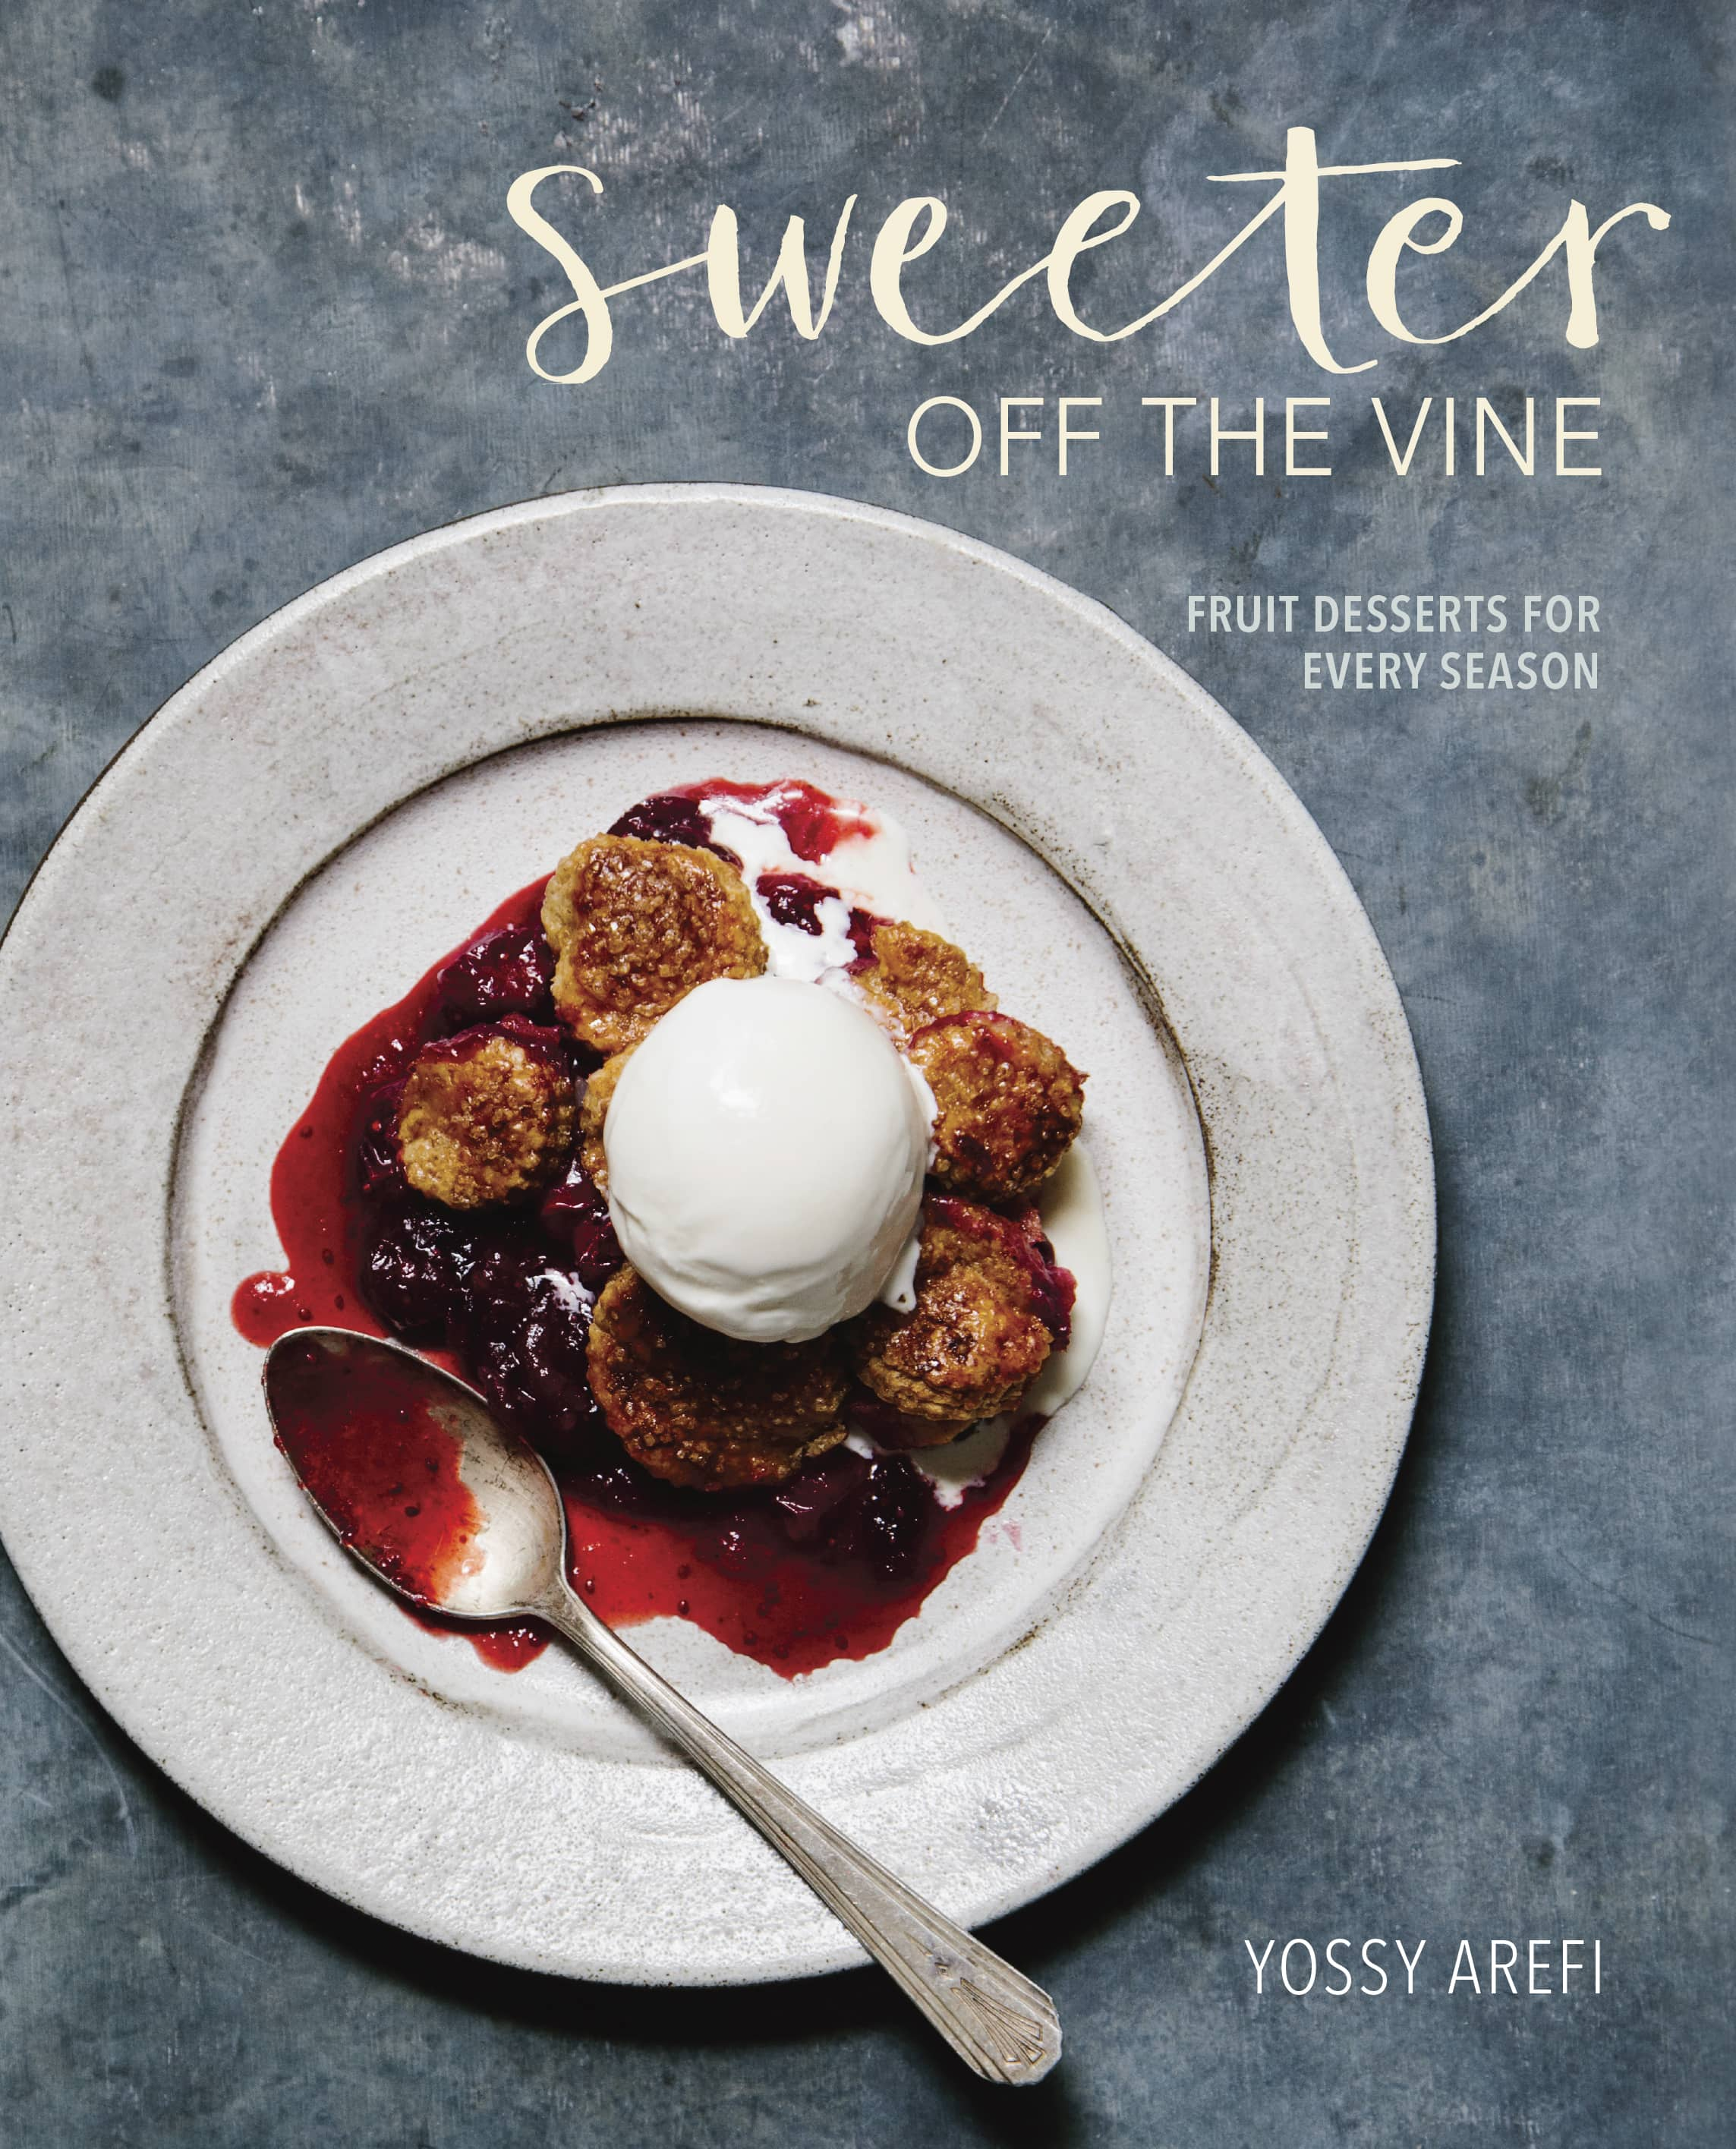 Sweeter Off the Vine Book Cover